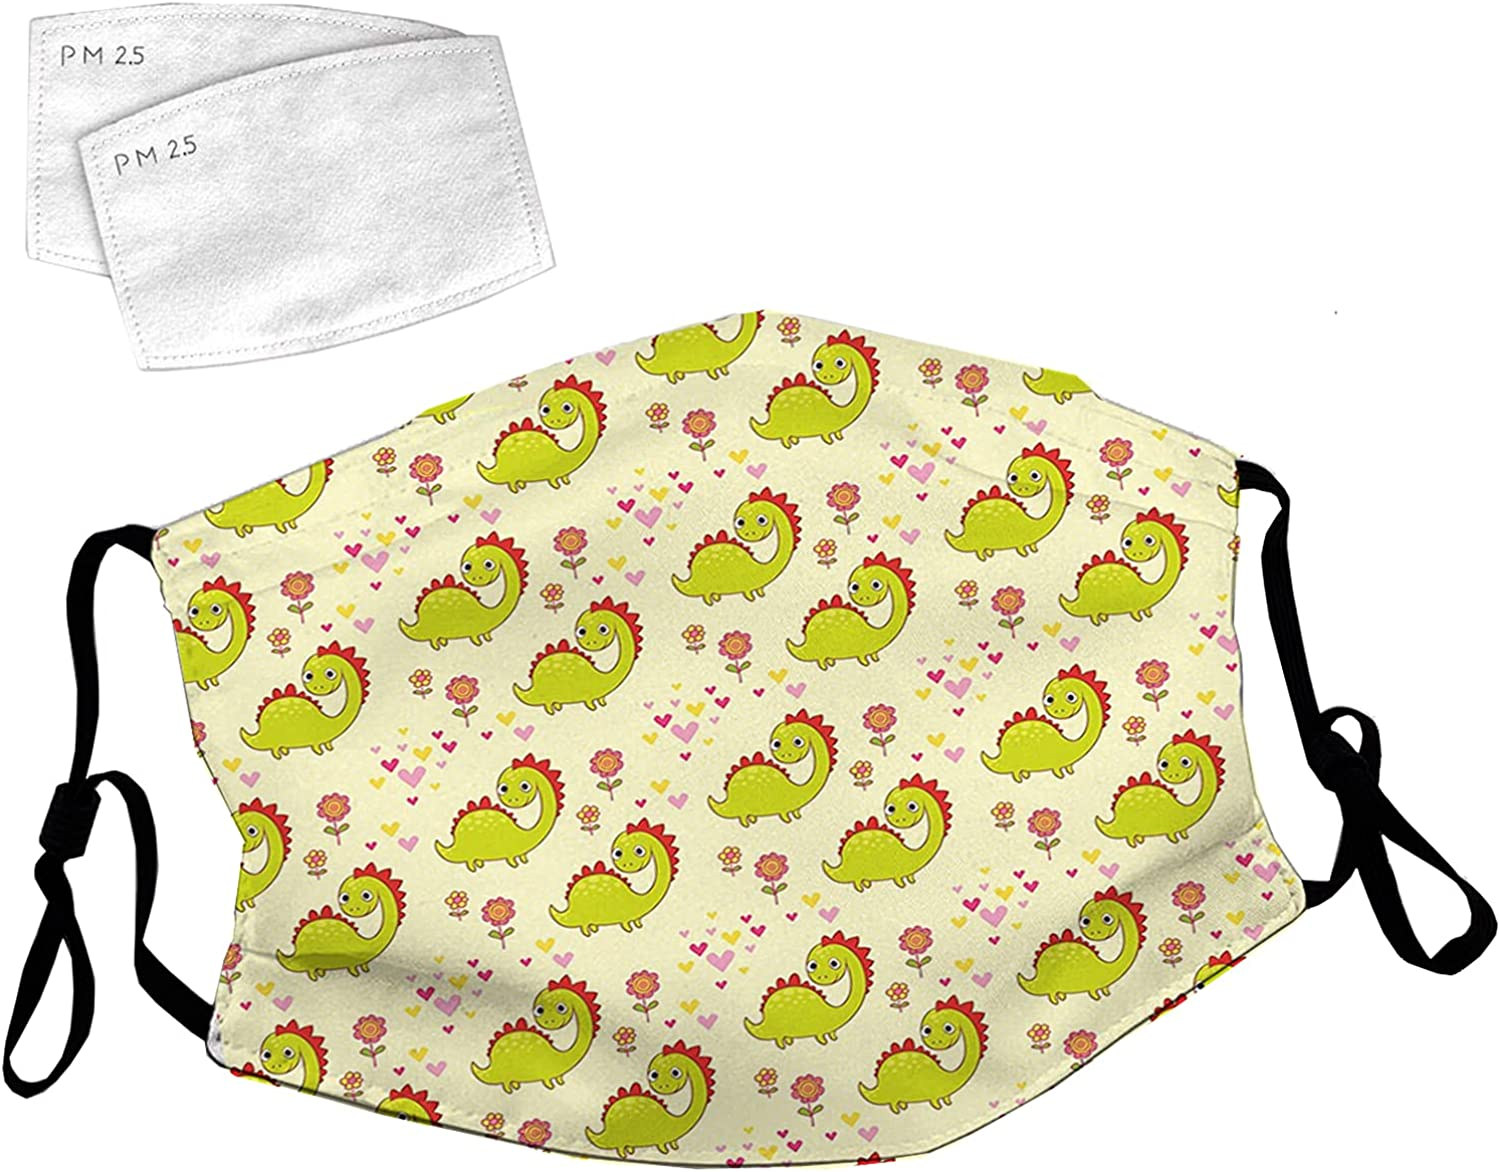 Reusable Face Mask 40% OFF Cheap Sale with Adjustable Chara Directly managed store Loops Cute Ear Dinosaur